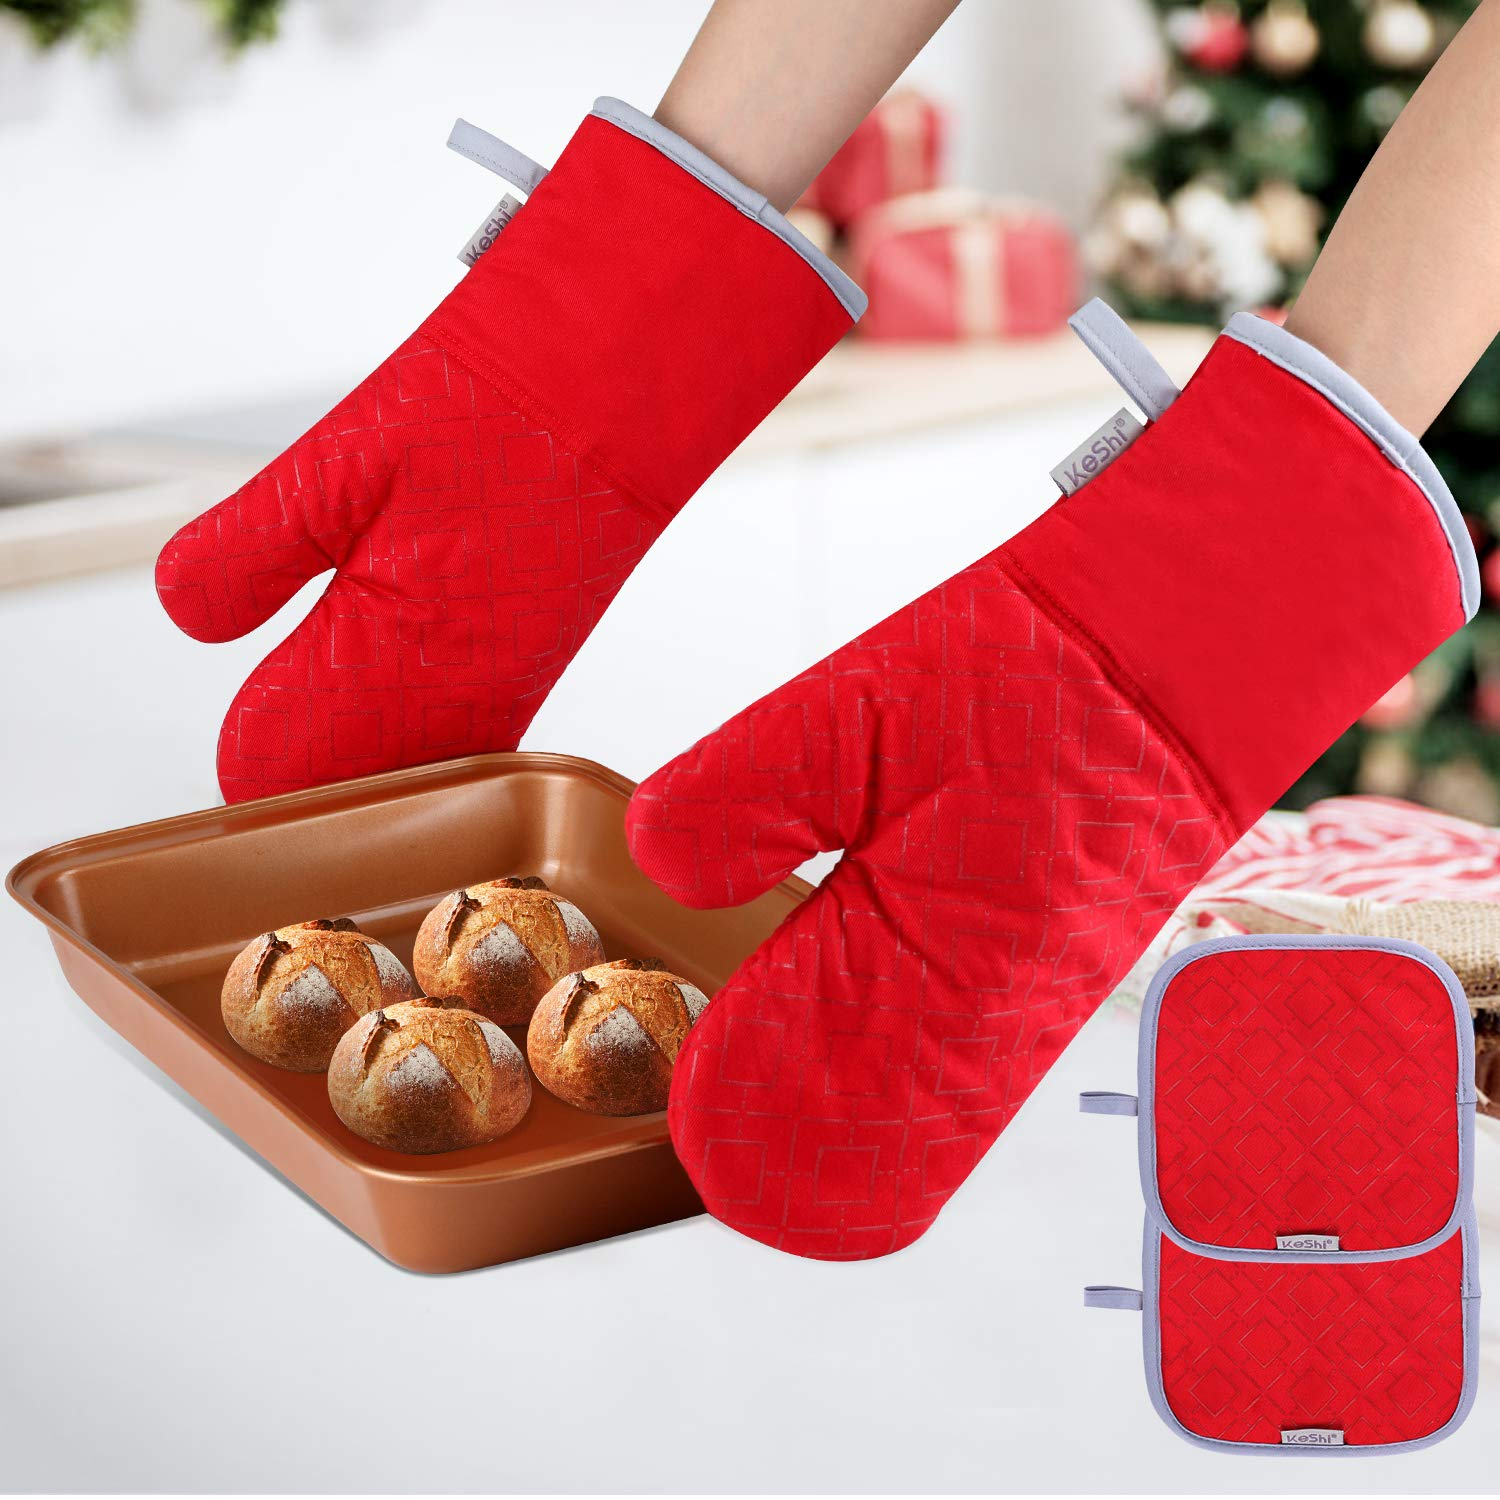 KeShi Kitchen Oven Mitts Set, Oven Mitts and Pot Holders, Heat Resistant with Quilted Cotton Lining, Non-Slip Surface 4 Pieces for Cooking, Baking, Grilling, Barbecue (Red)